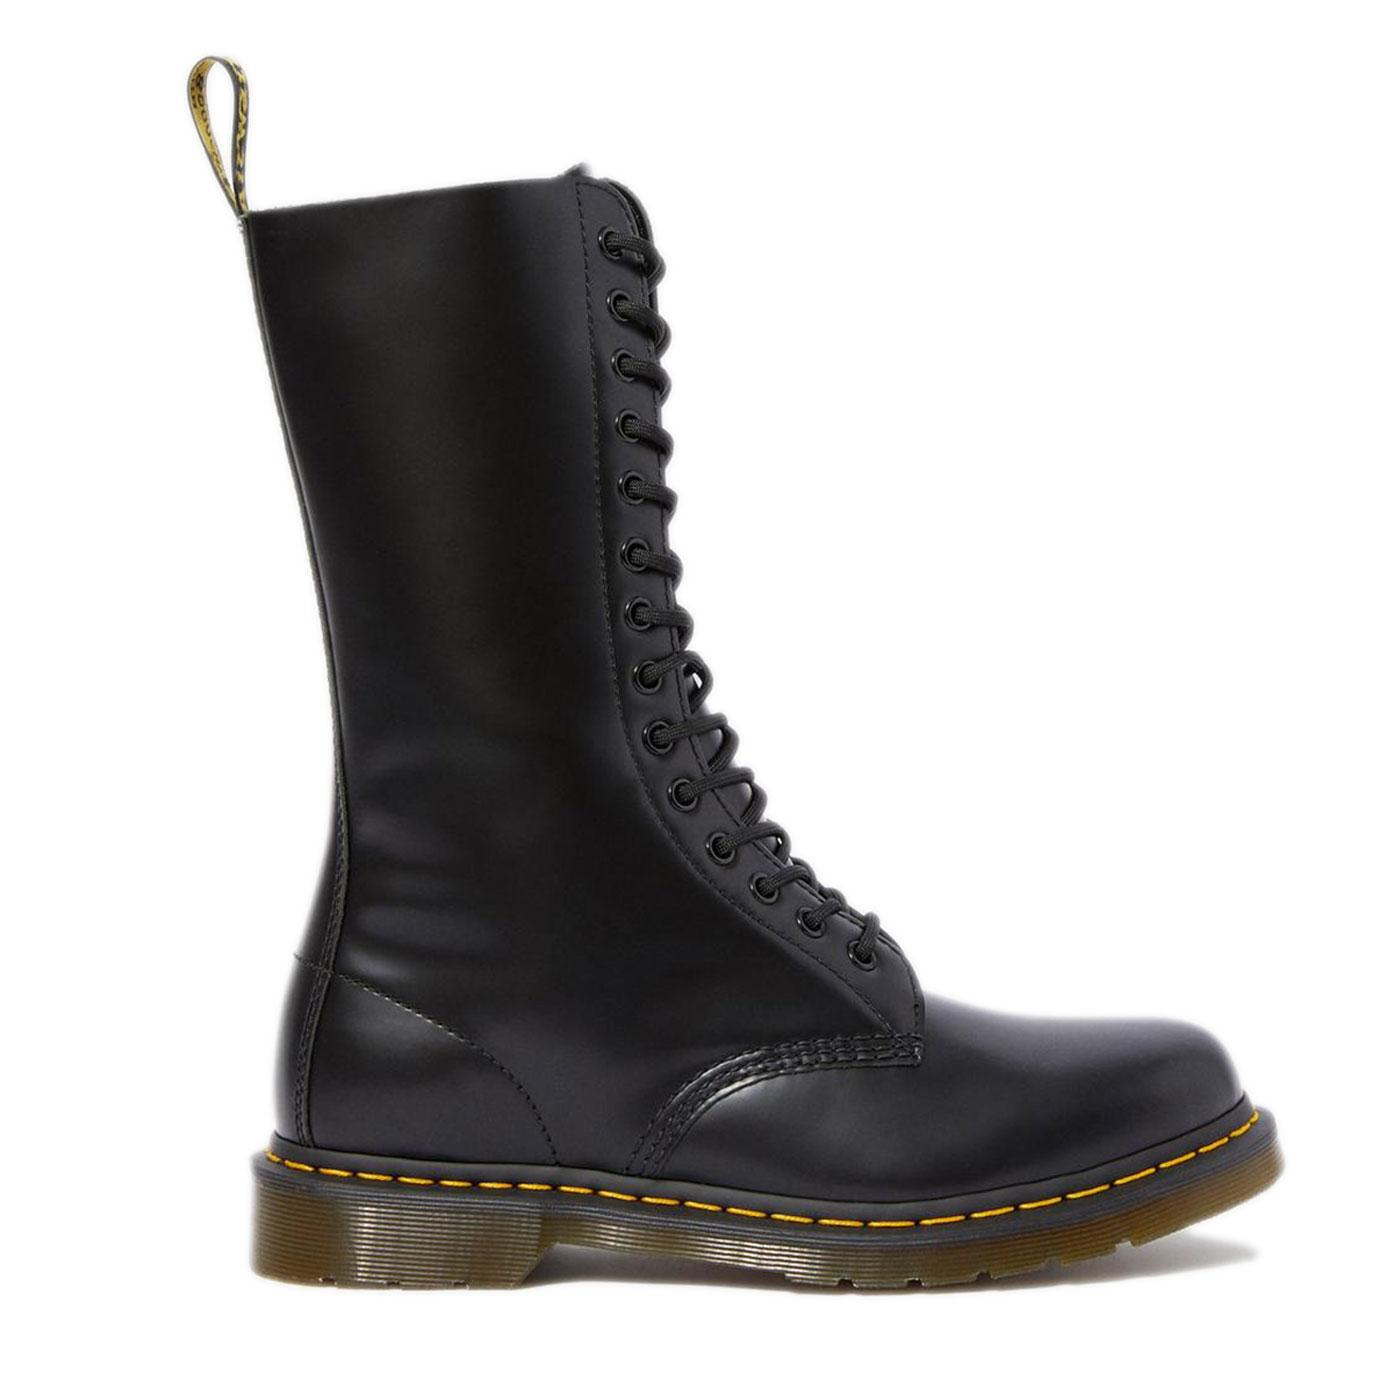 1914 Smooth DR MARTENS Men's Lace Up Calf Boots